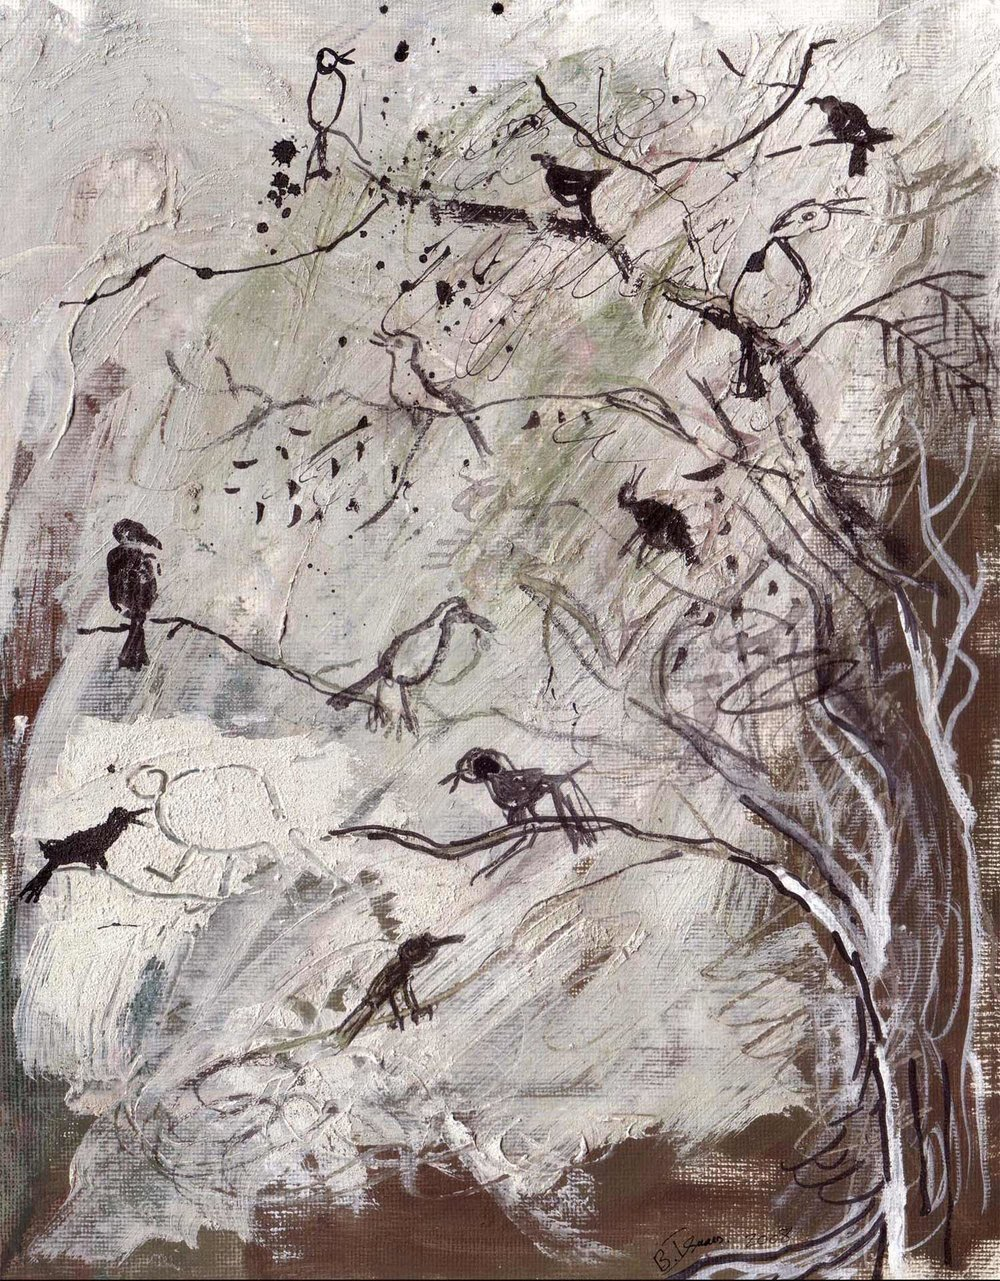 LOUD BIRDS Mixed Media on Paper | 25 X 32.5 CM |2008 SOLD